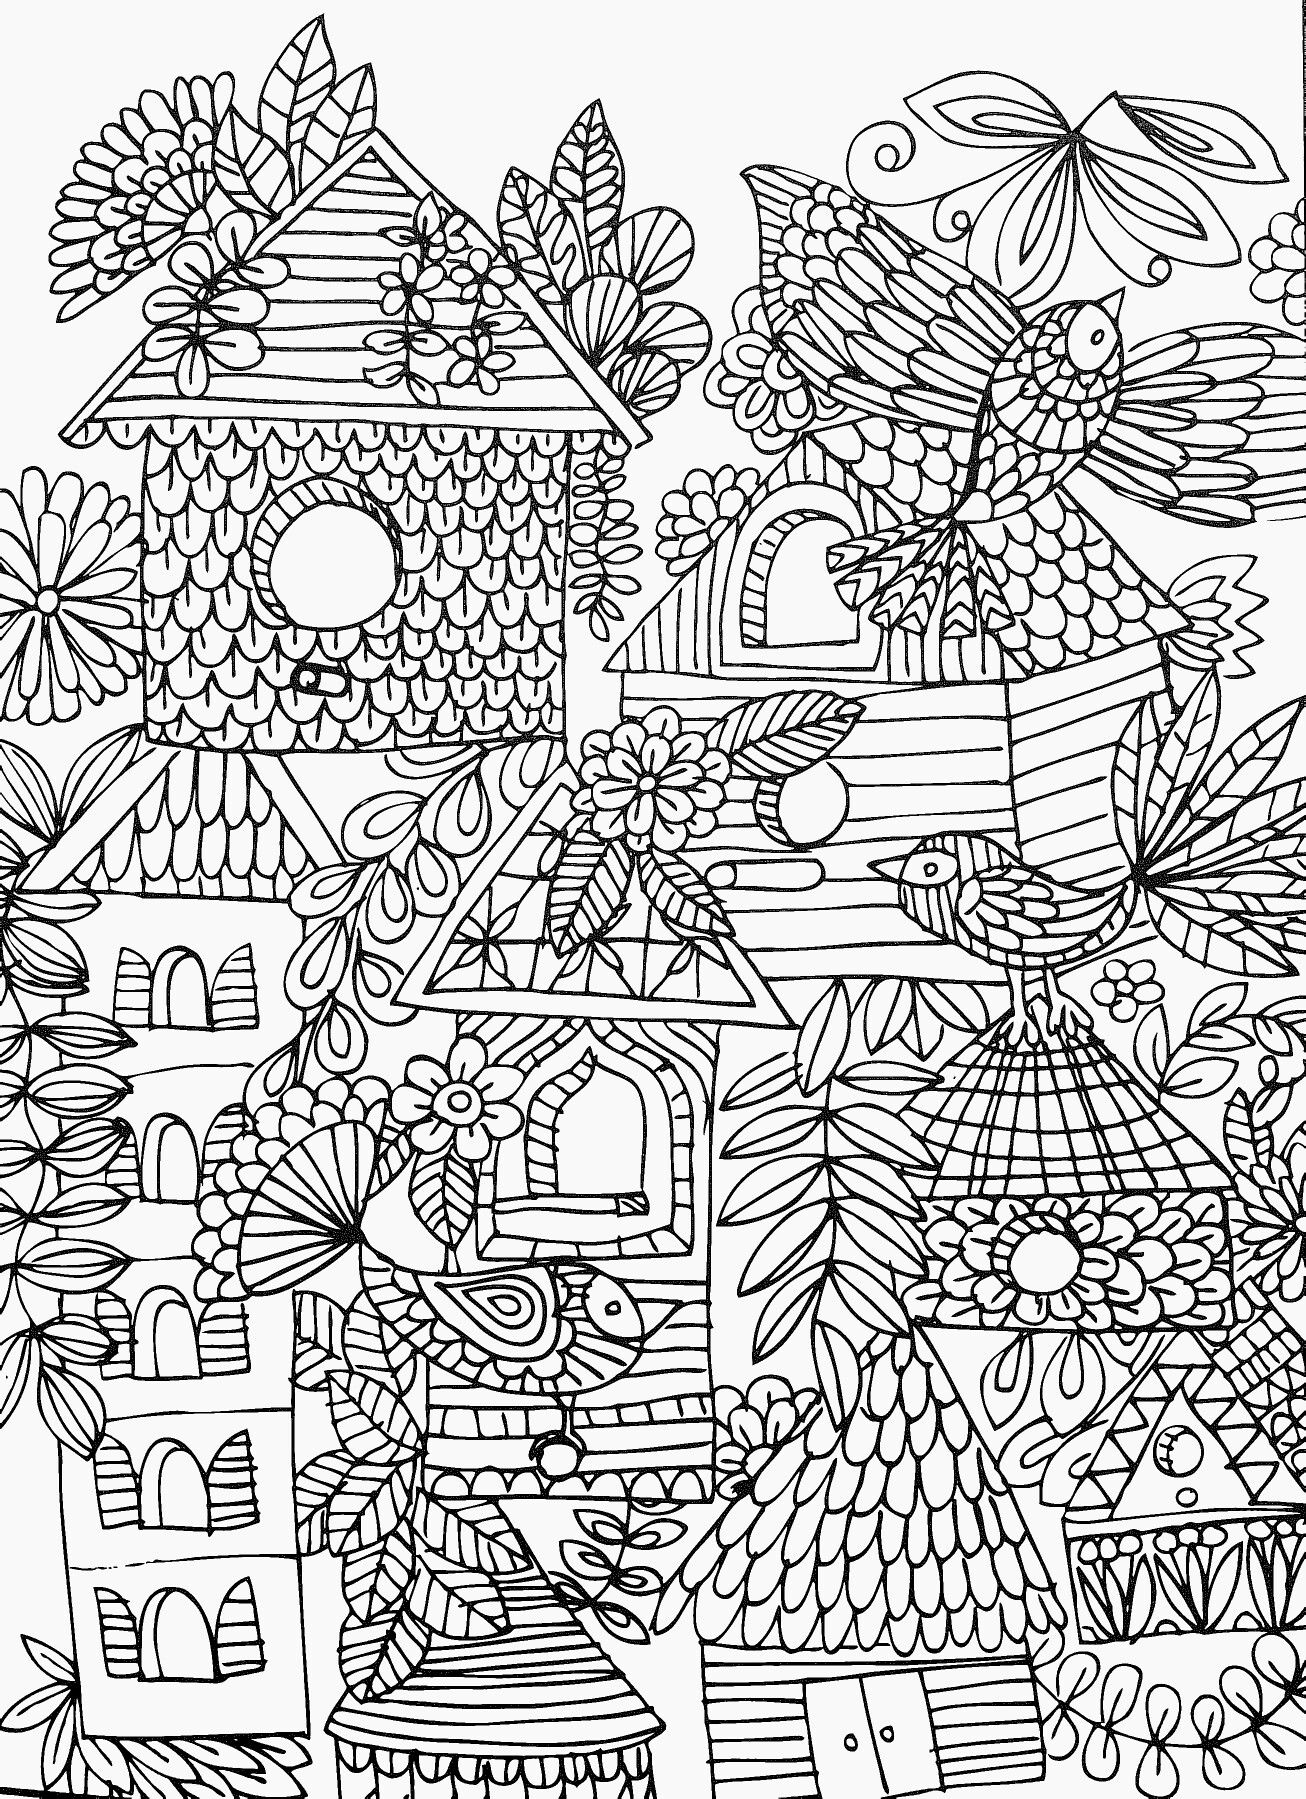 19 Colorama Coloring Pages To Print Collection